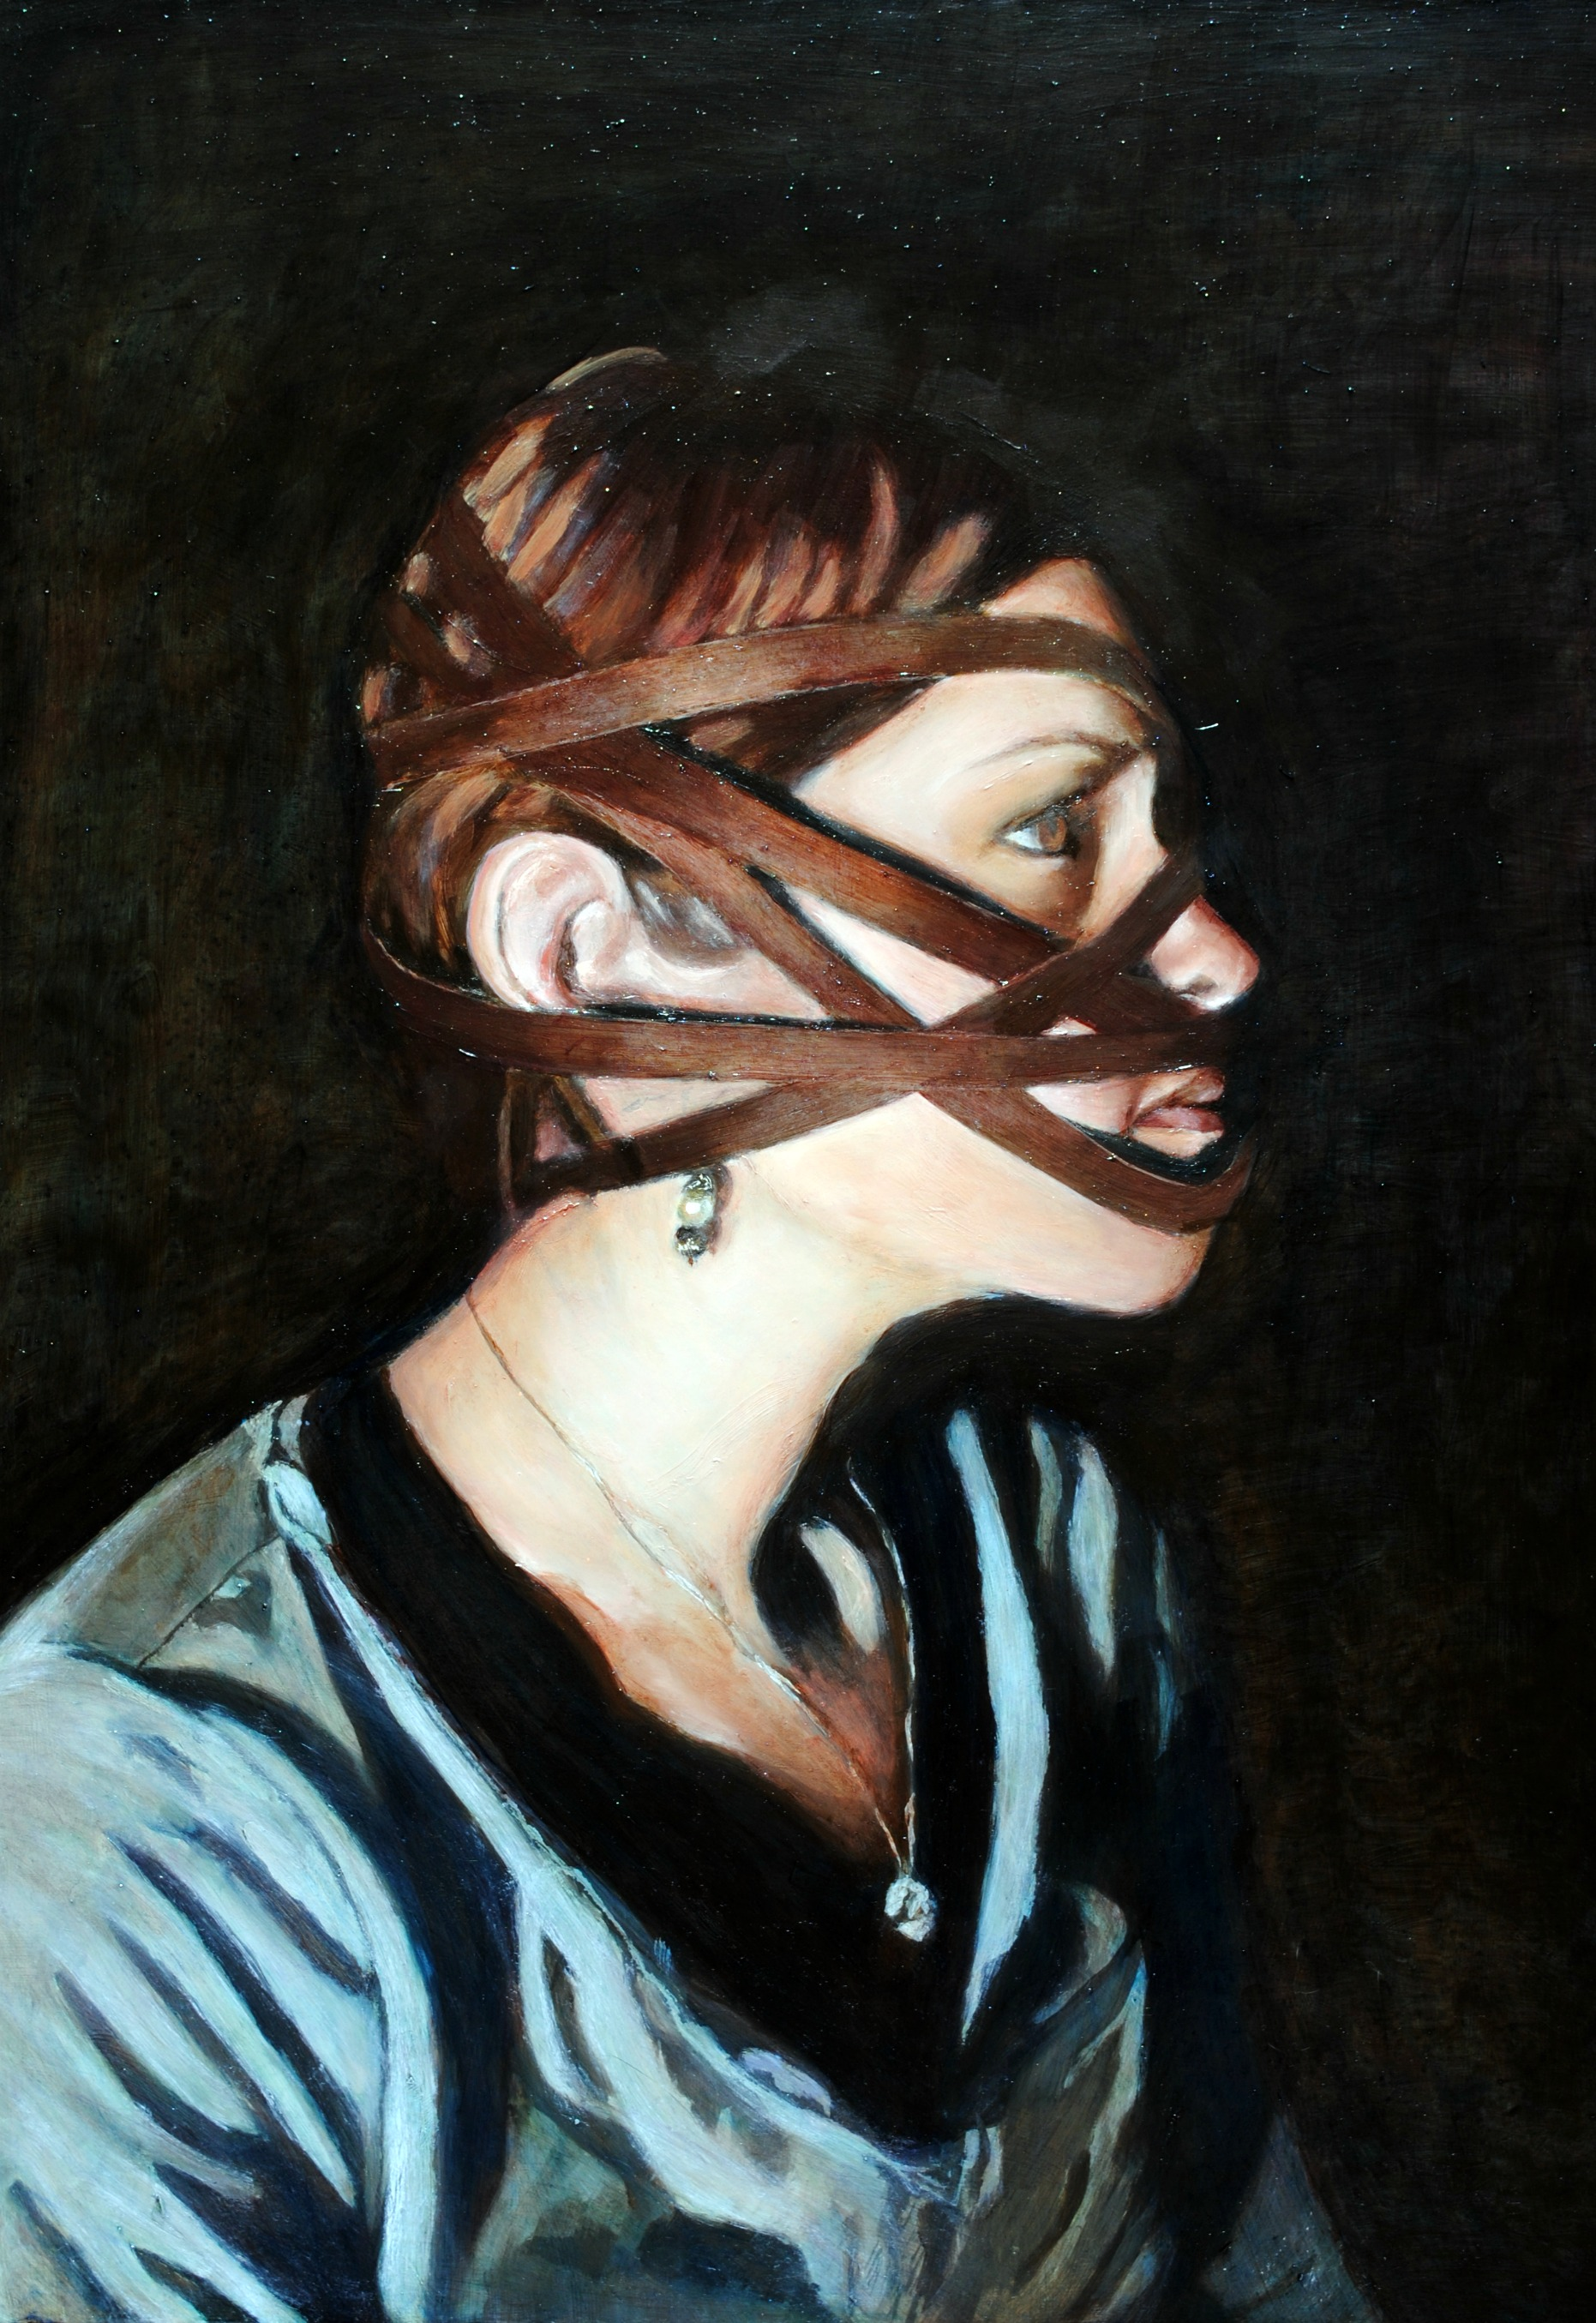 Self-Portrait 18x24 Oil On Wood Available